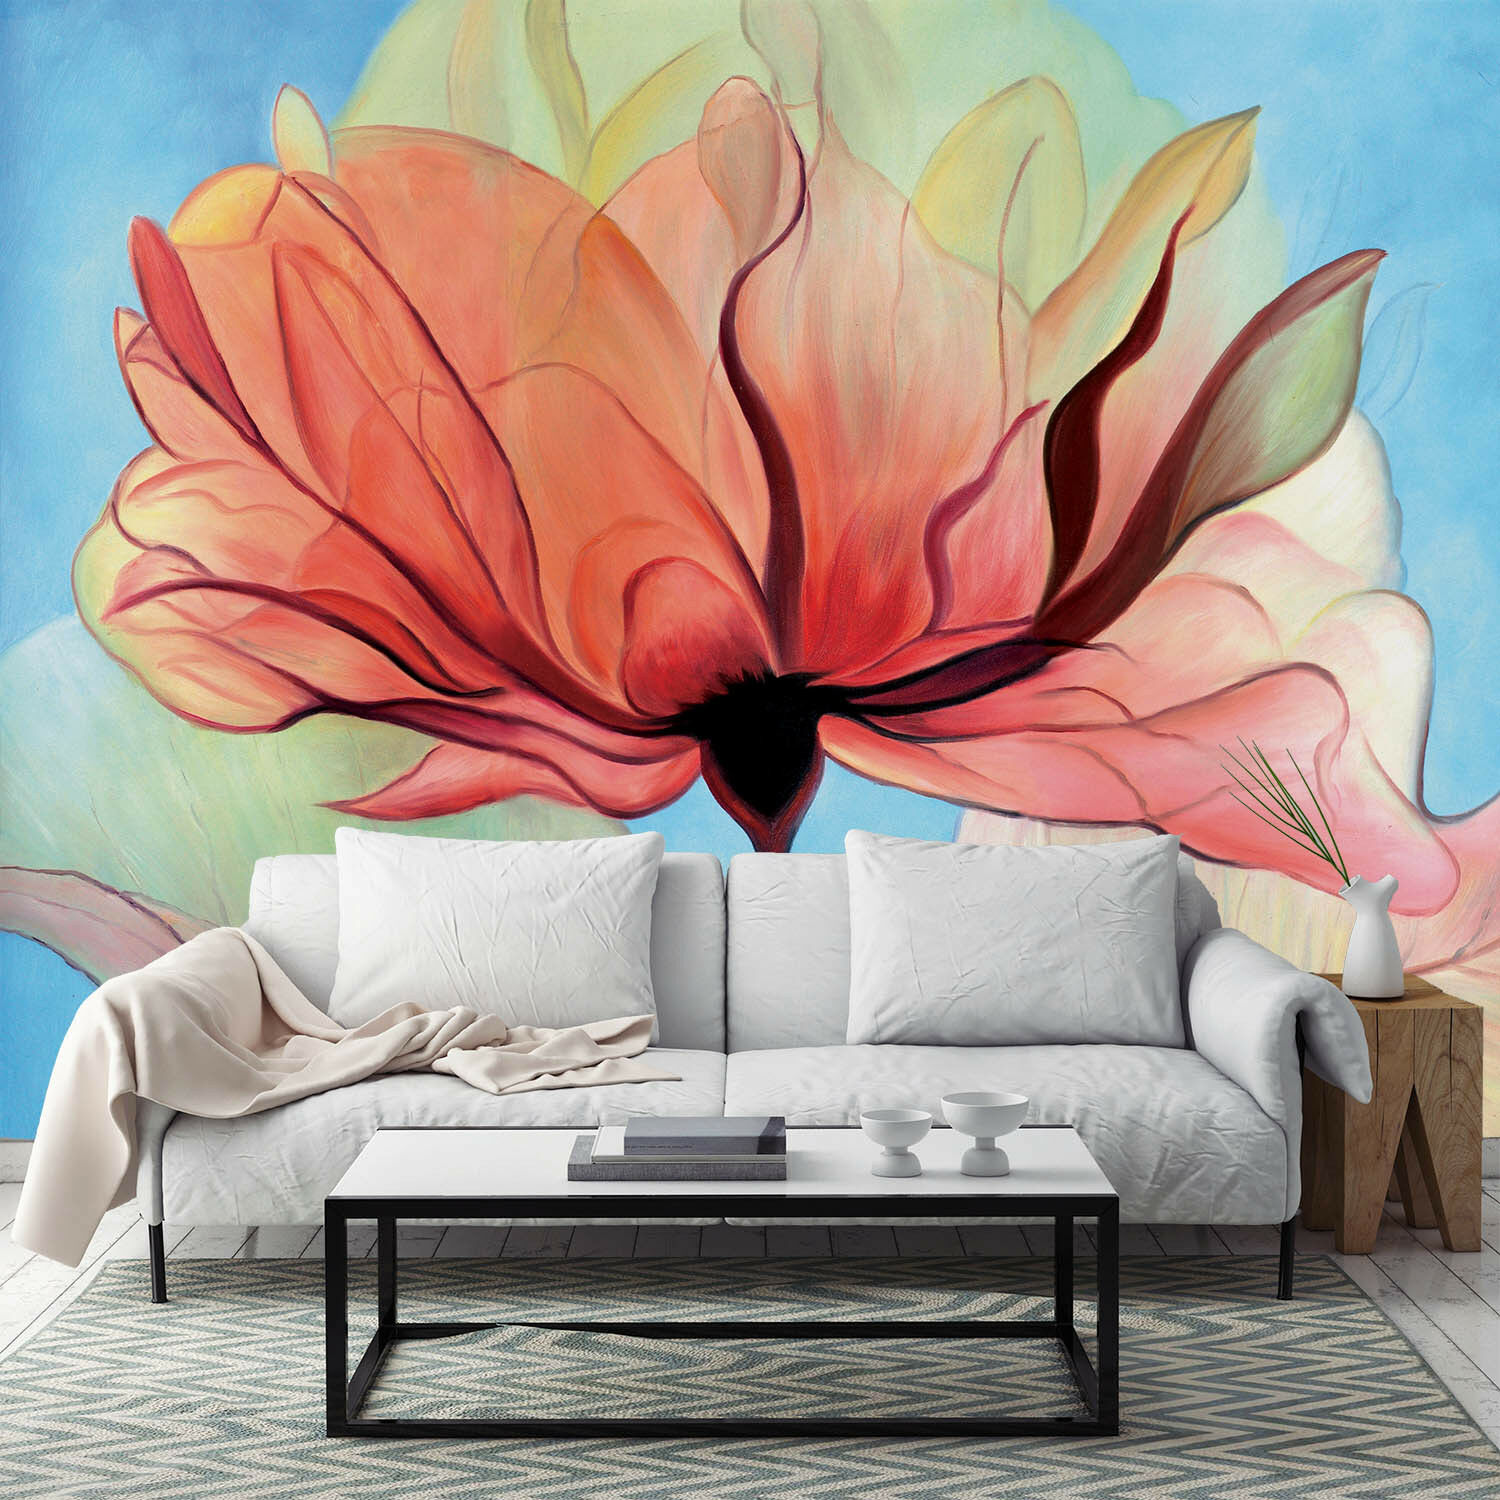 3D Hand Painted Flower Art 2984 Wall Paper Wall Print Decal Wall AJ WALLPAPER CA